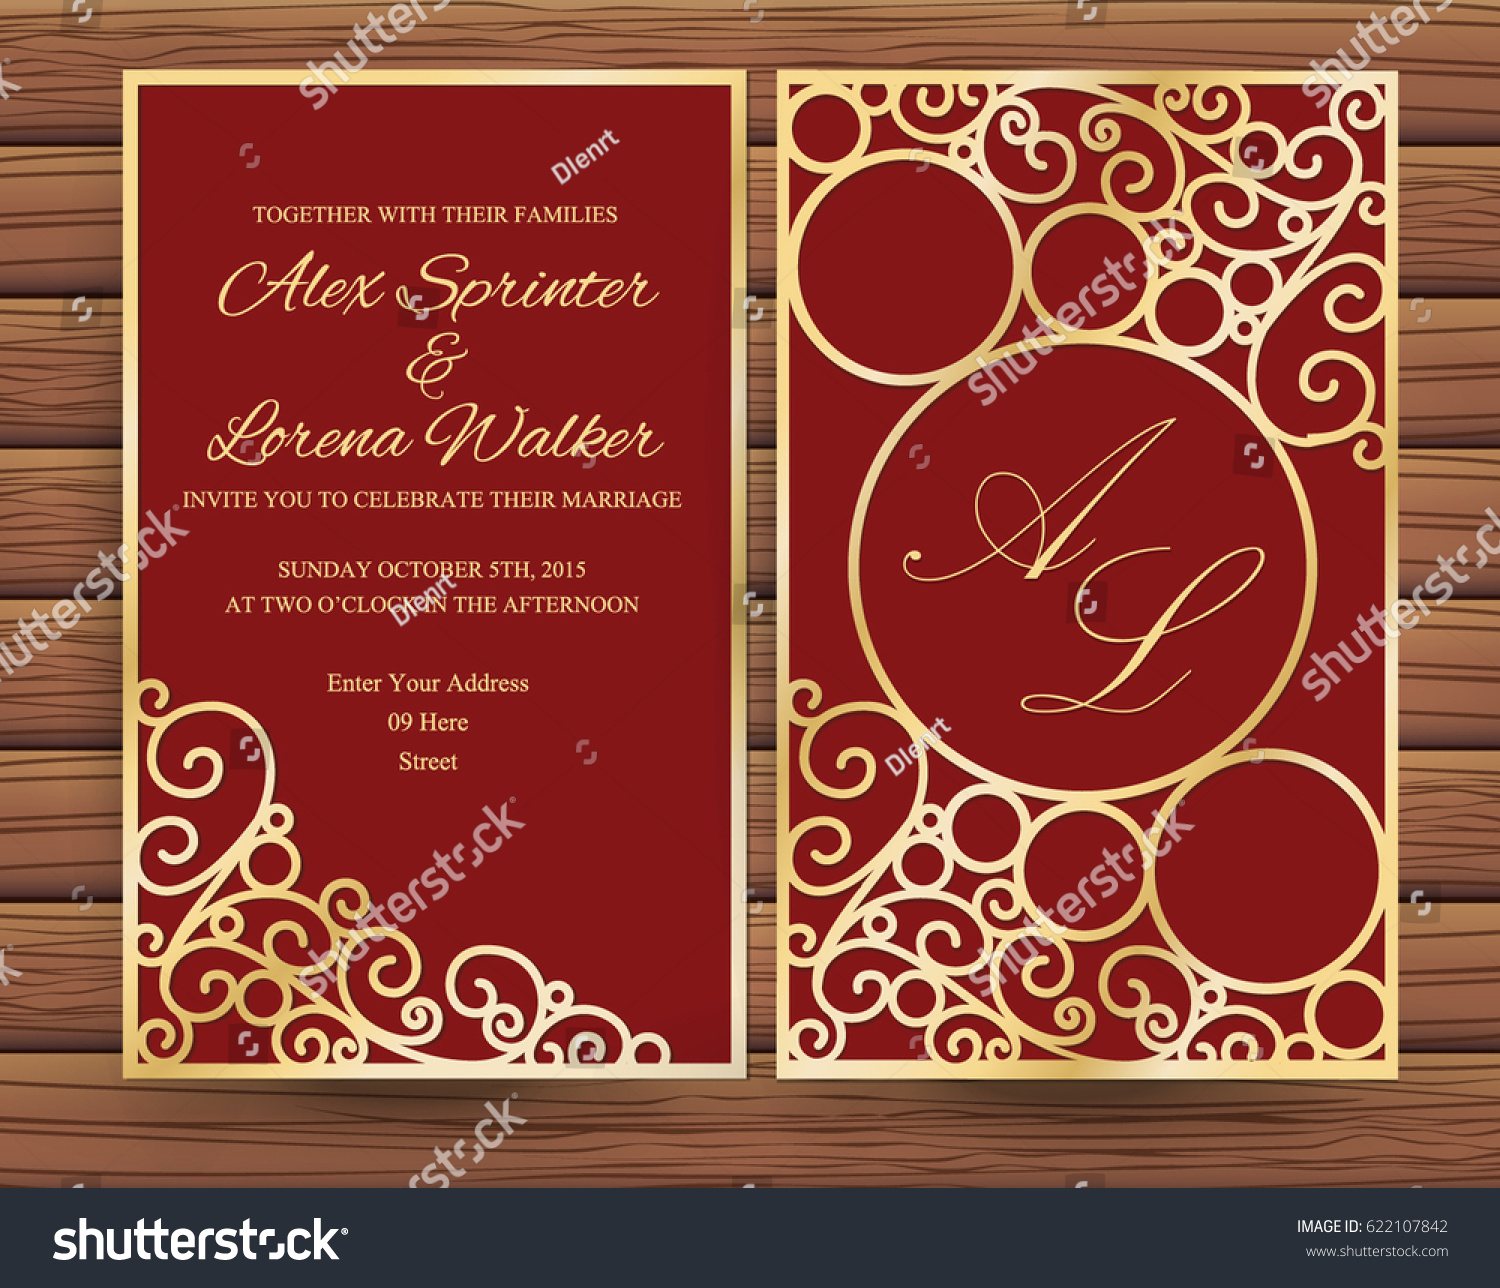 Elegant Red Gold Wedding Invitation Stock Vector 622107842 ...